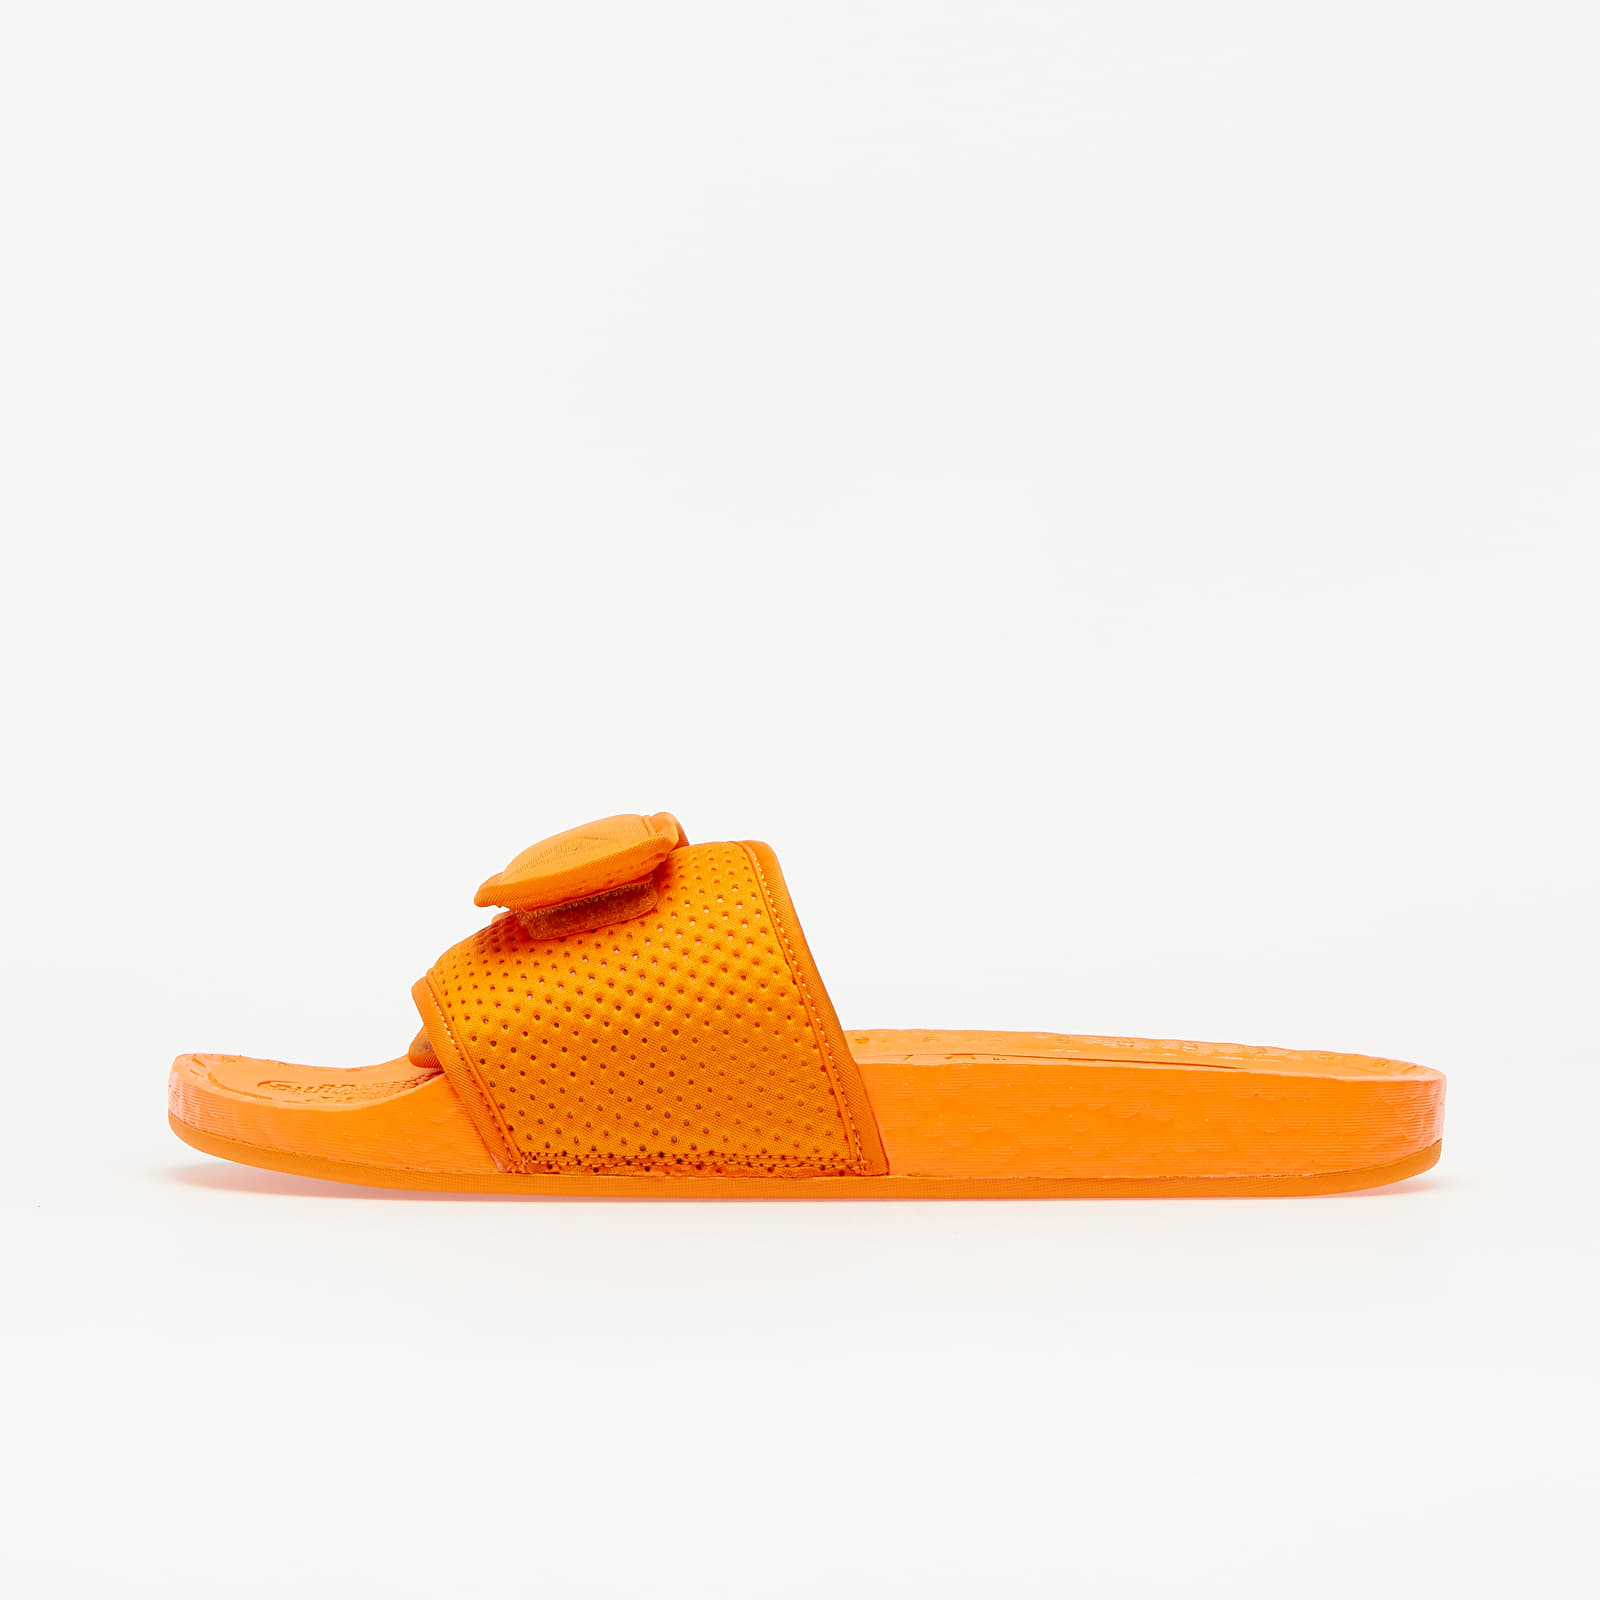 Muške tenisice adidas x Pharrell Williams Chancletas HU Bright Orange/ Bright Orange/ Bright Orange